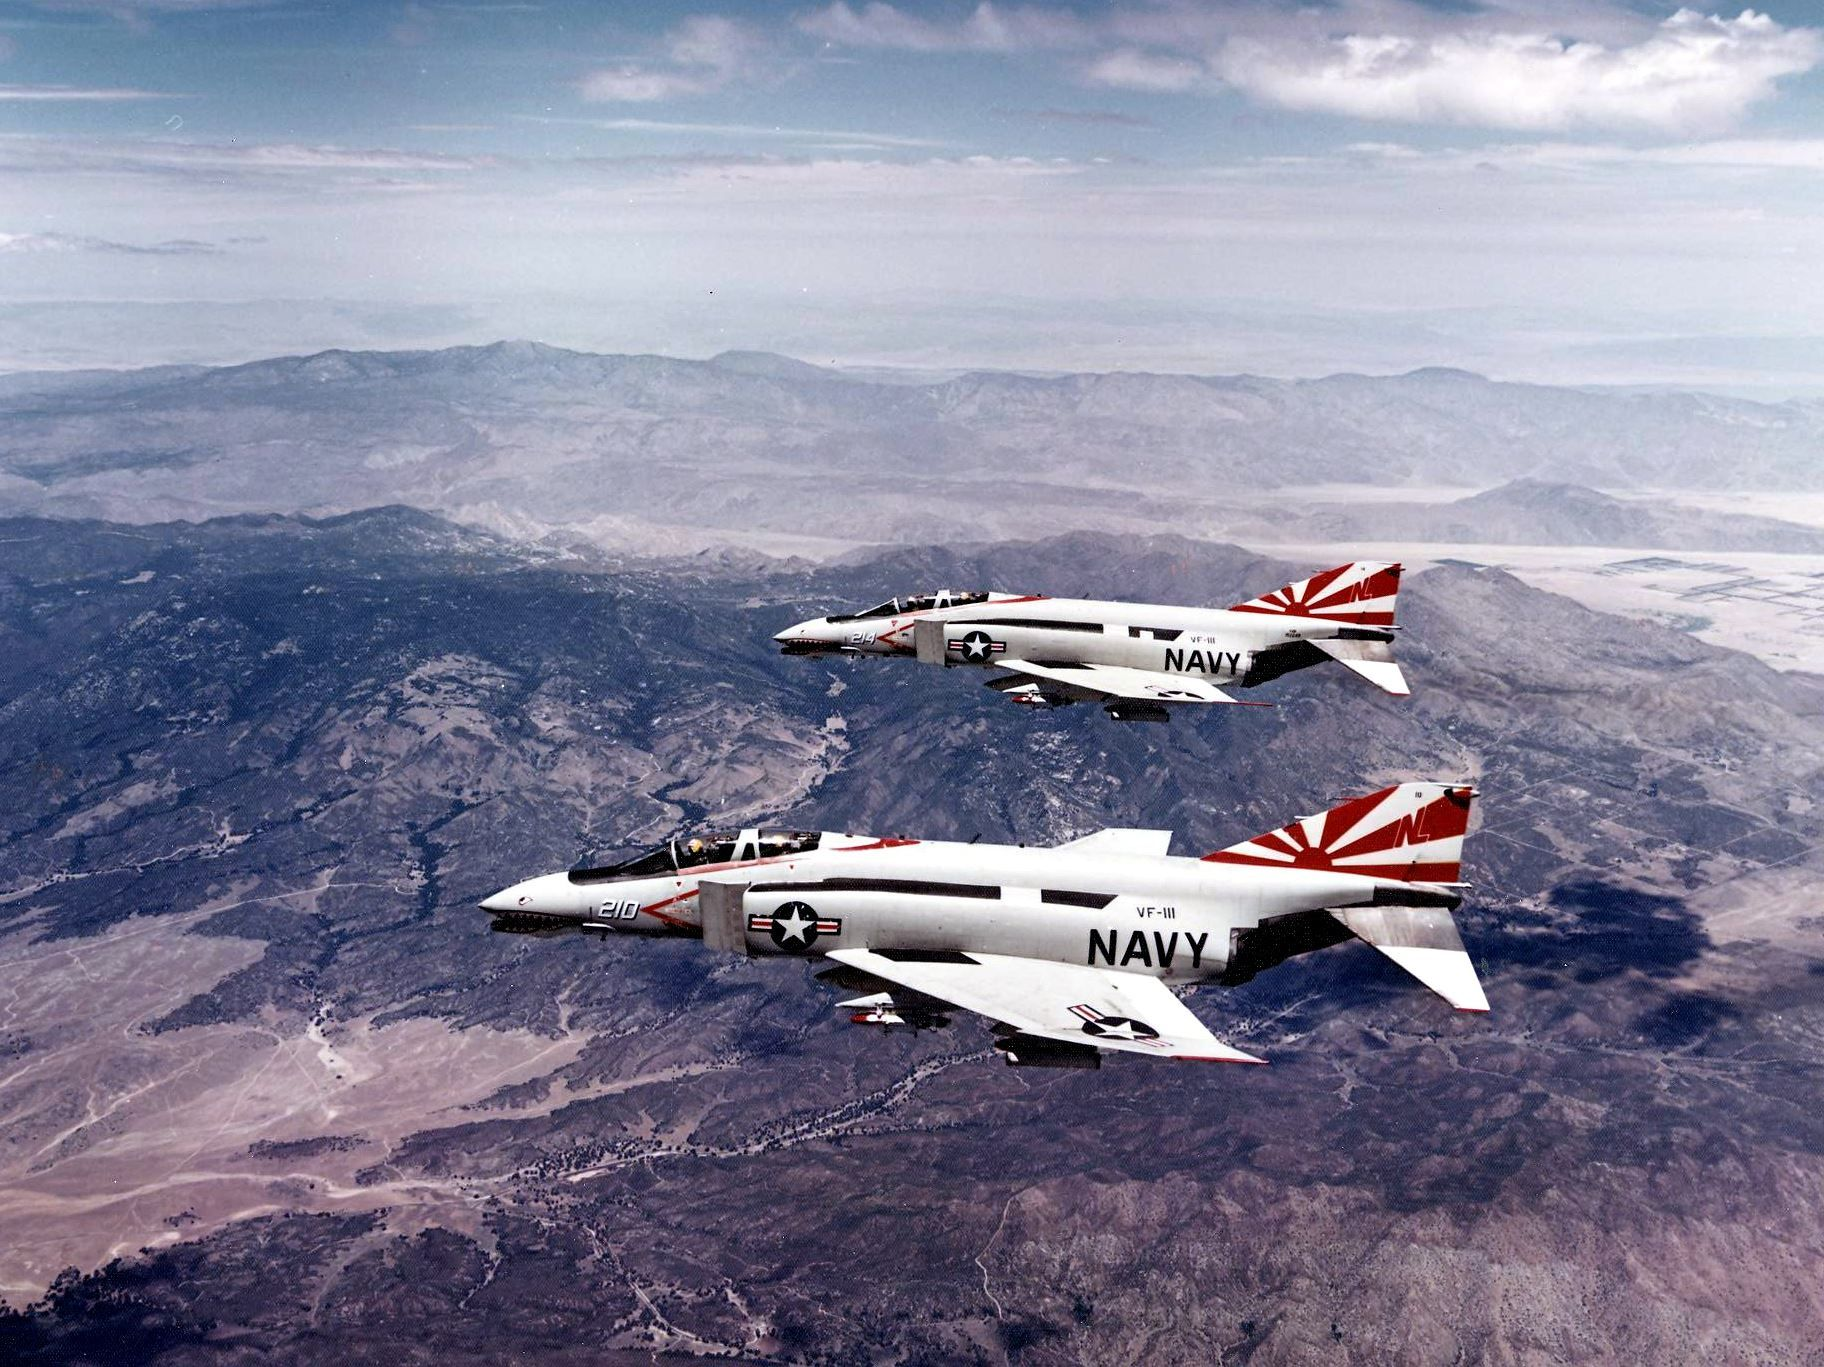 17 Best images about F-4 Phantom II on Pinterest | Luftwaffe, The ...